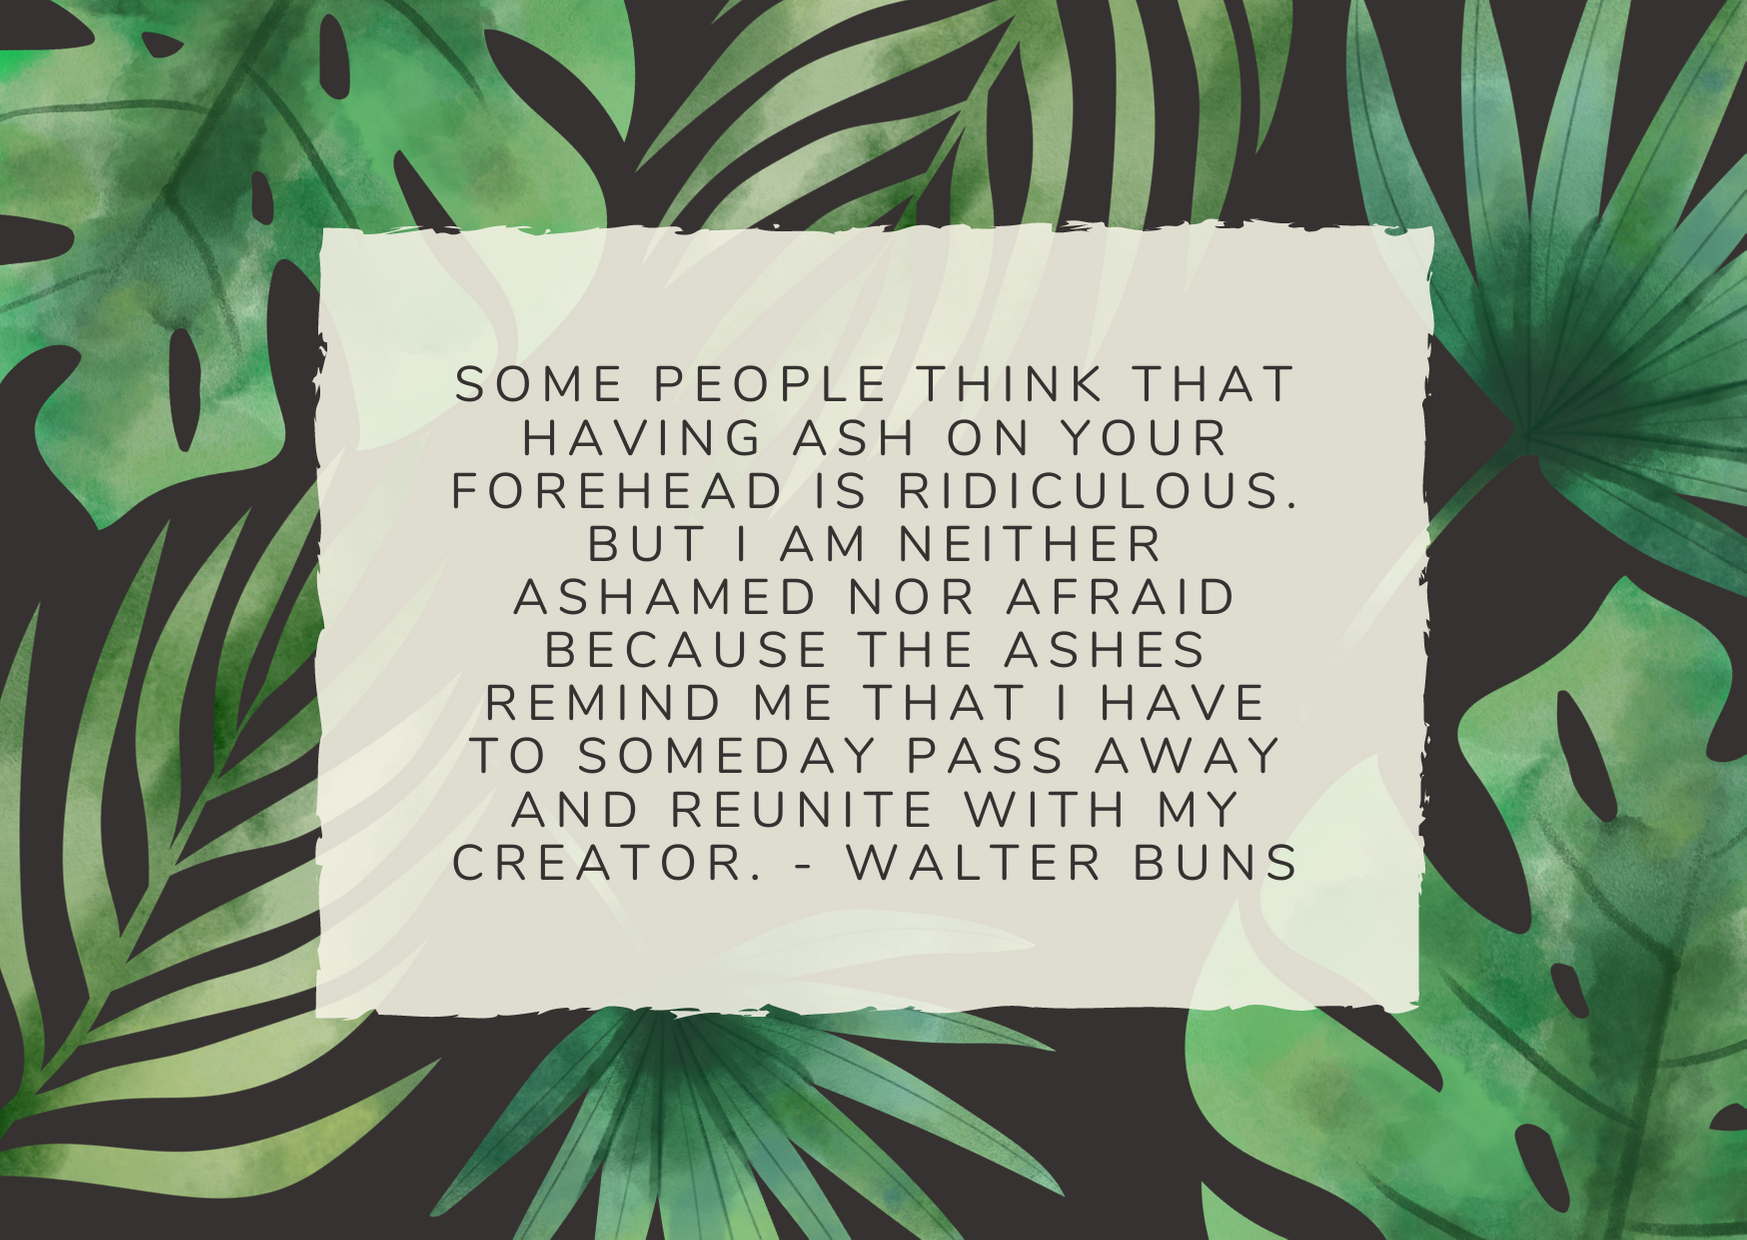 Some people think that having ash on your forehead is ridiculous. But I am neither ashamed nor afraid because the ashes remind me that I have to someday pass away and reunite with my creator. - Walter Buns